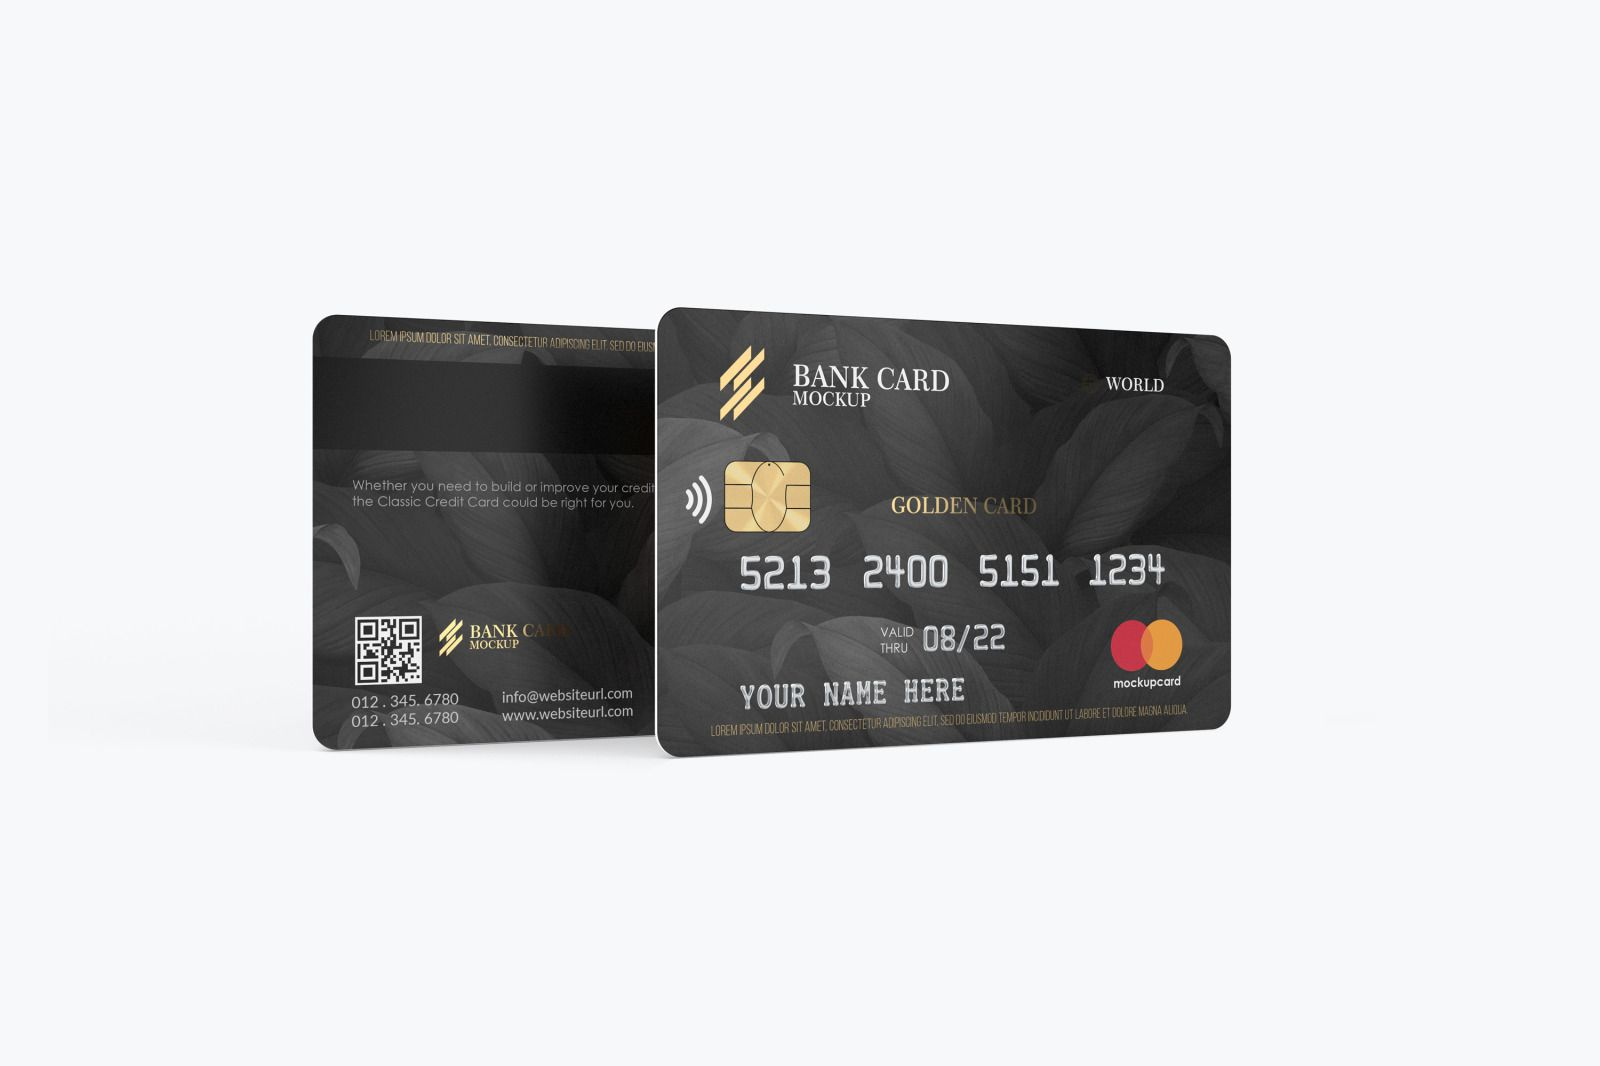 Plastic Card Mockup In Product Mockups On Yellow Images Creative Store Plastic Card Discount Card Card Design